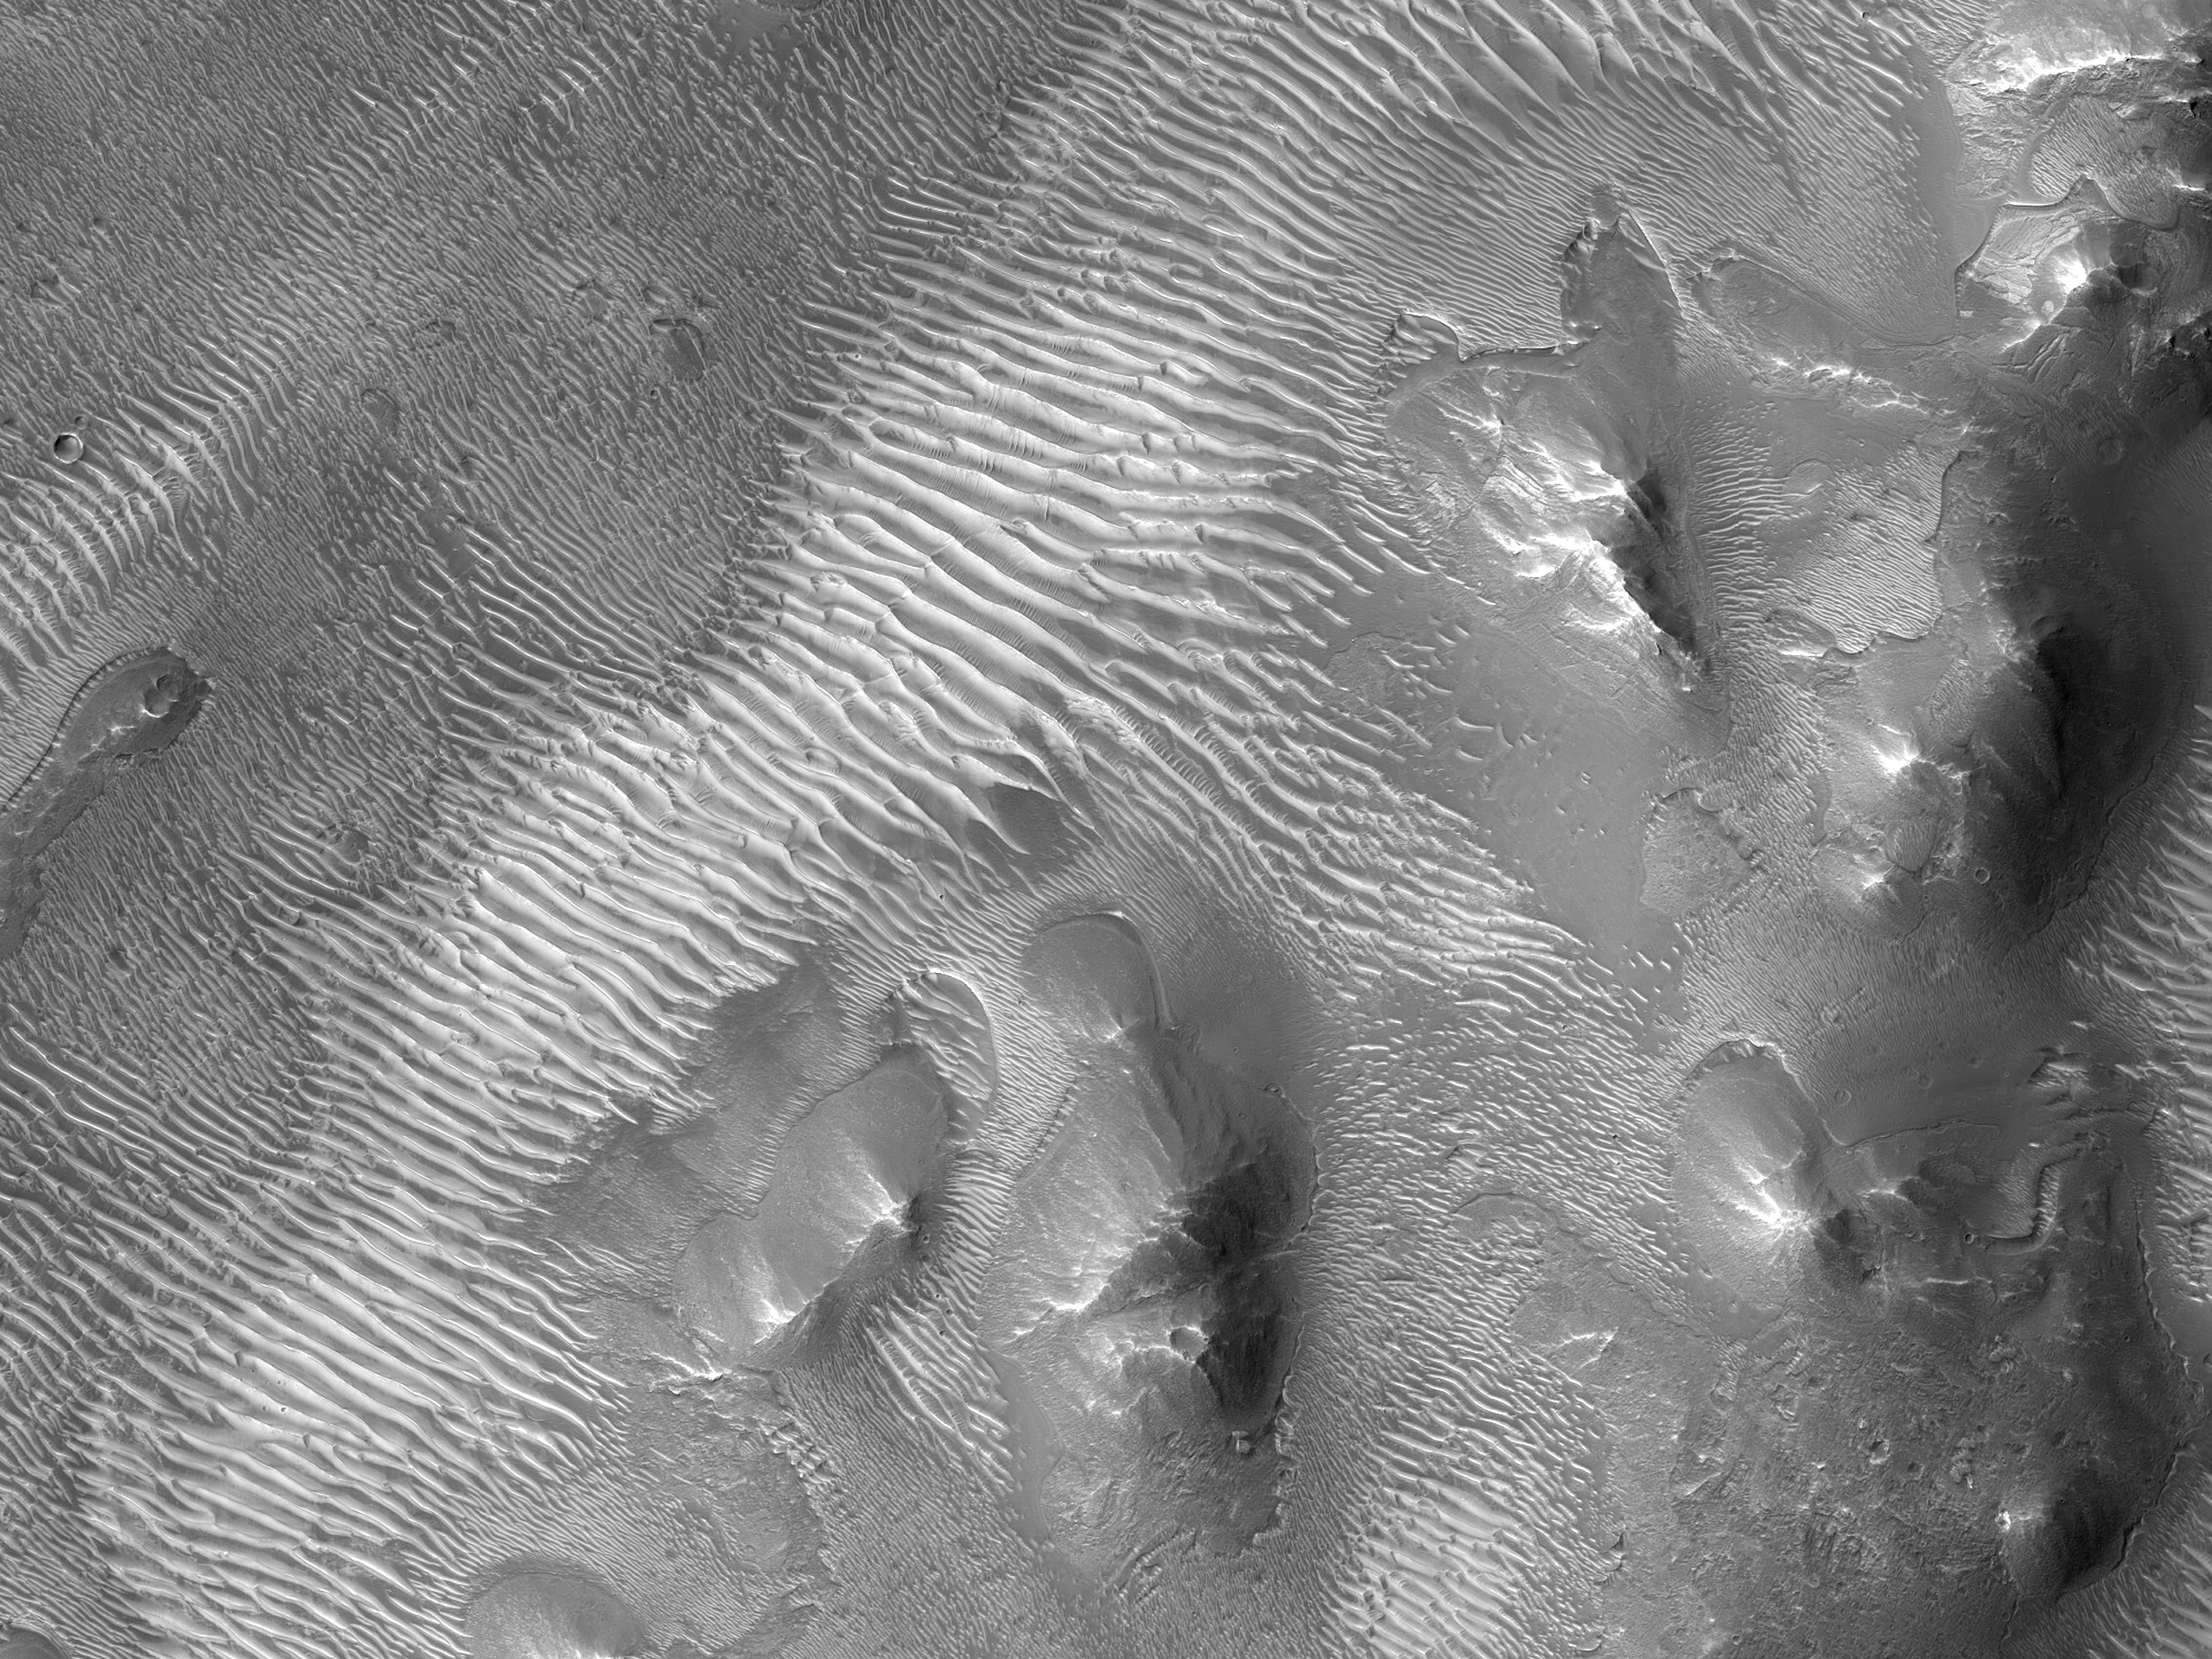 Possible Crater-Related Deposits North of Oudemans Crater